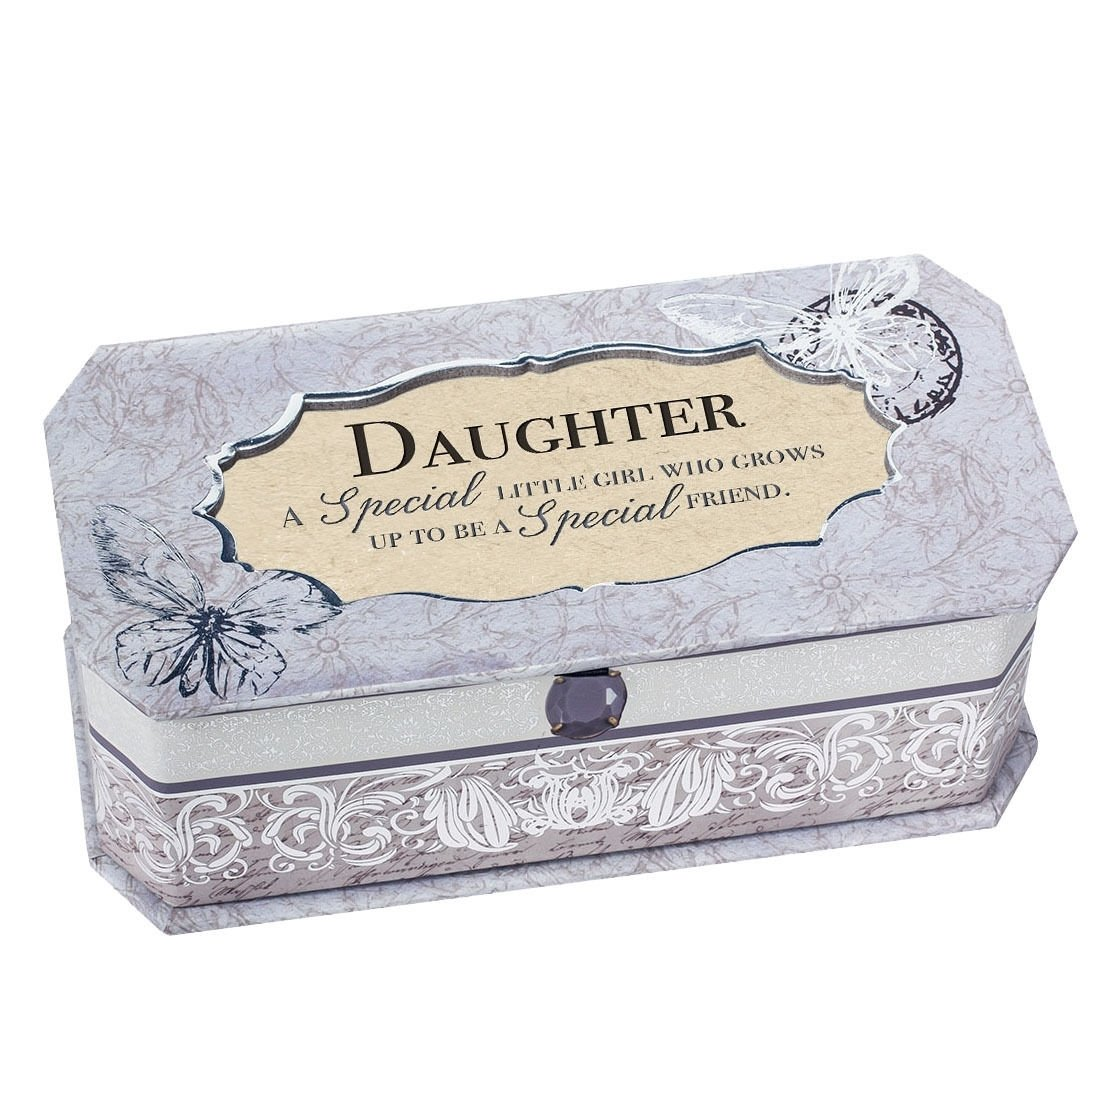 cottage garden musical jewellery box gift for daughter- special